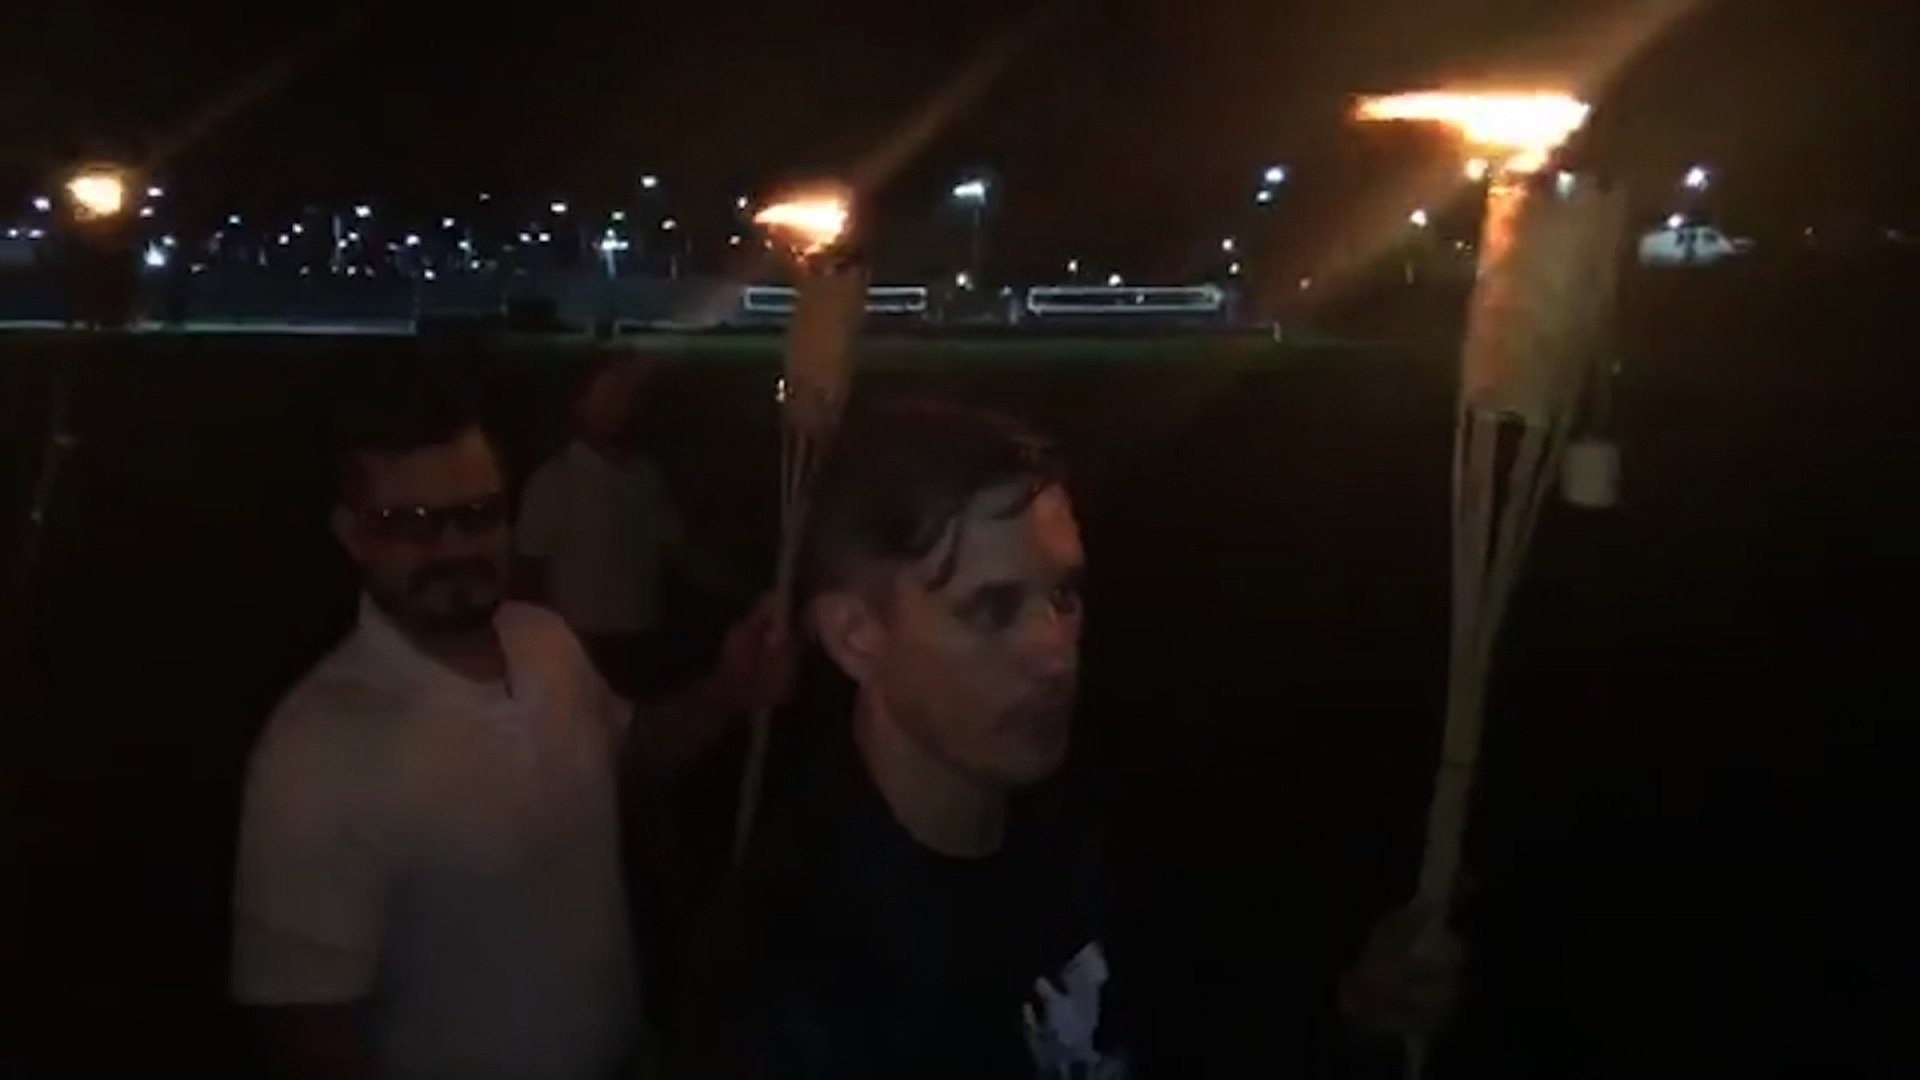 """A group of alt-right activists marched through the University of Virginia campus in Charlottesville, chanting """"blood and soil"""" and """"one people, one nation, end immigration."""""""